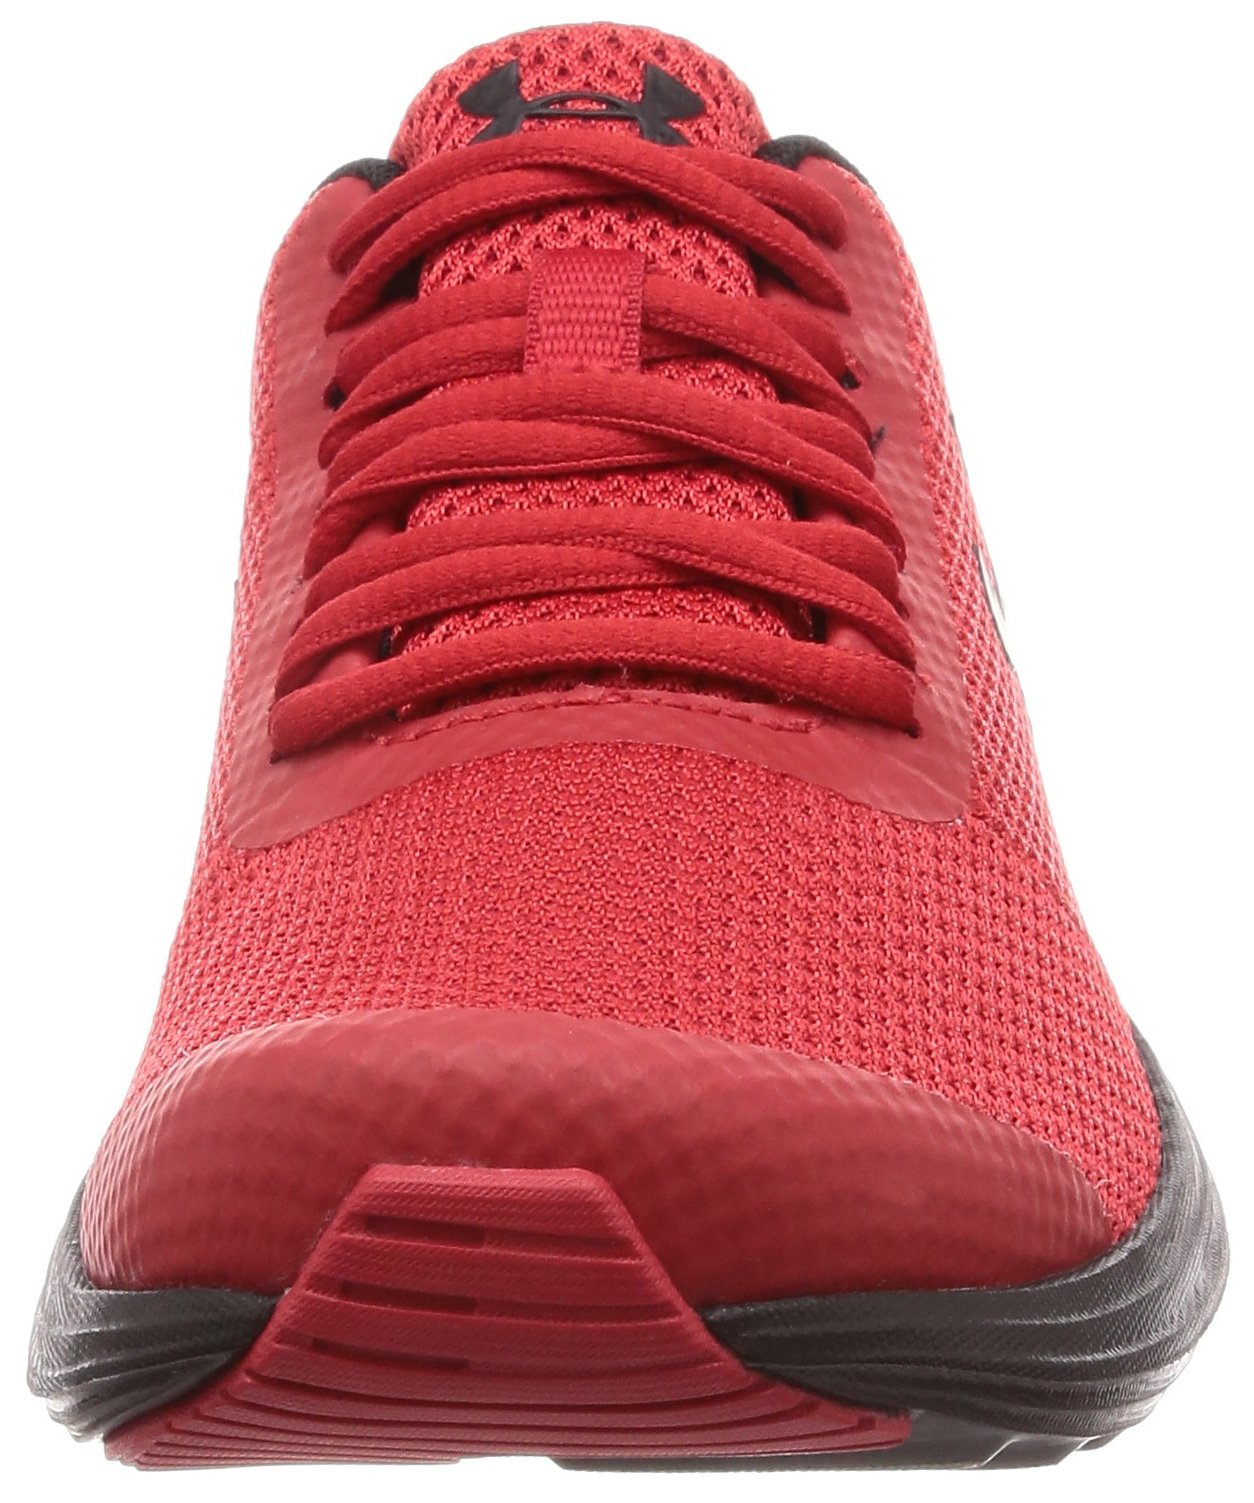 Under Armour Boys' Grade School Surge RN Sneaker, Red (600)/Black, 3.5 by Under Armour (Image #4)